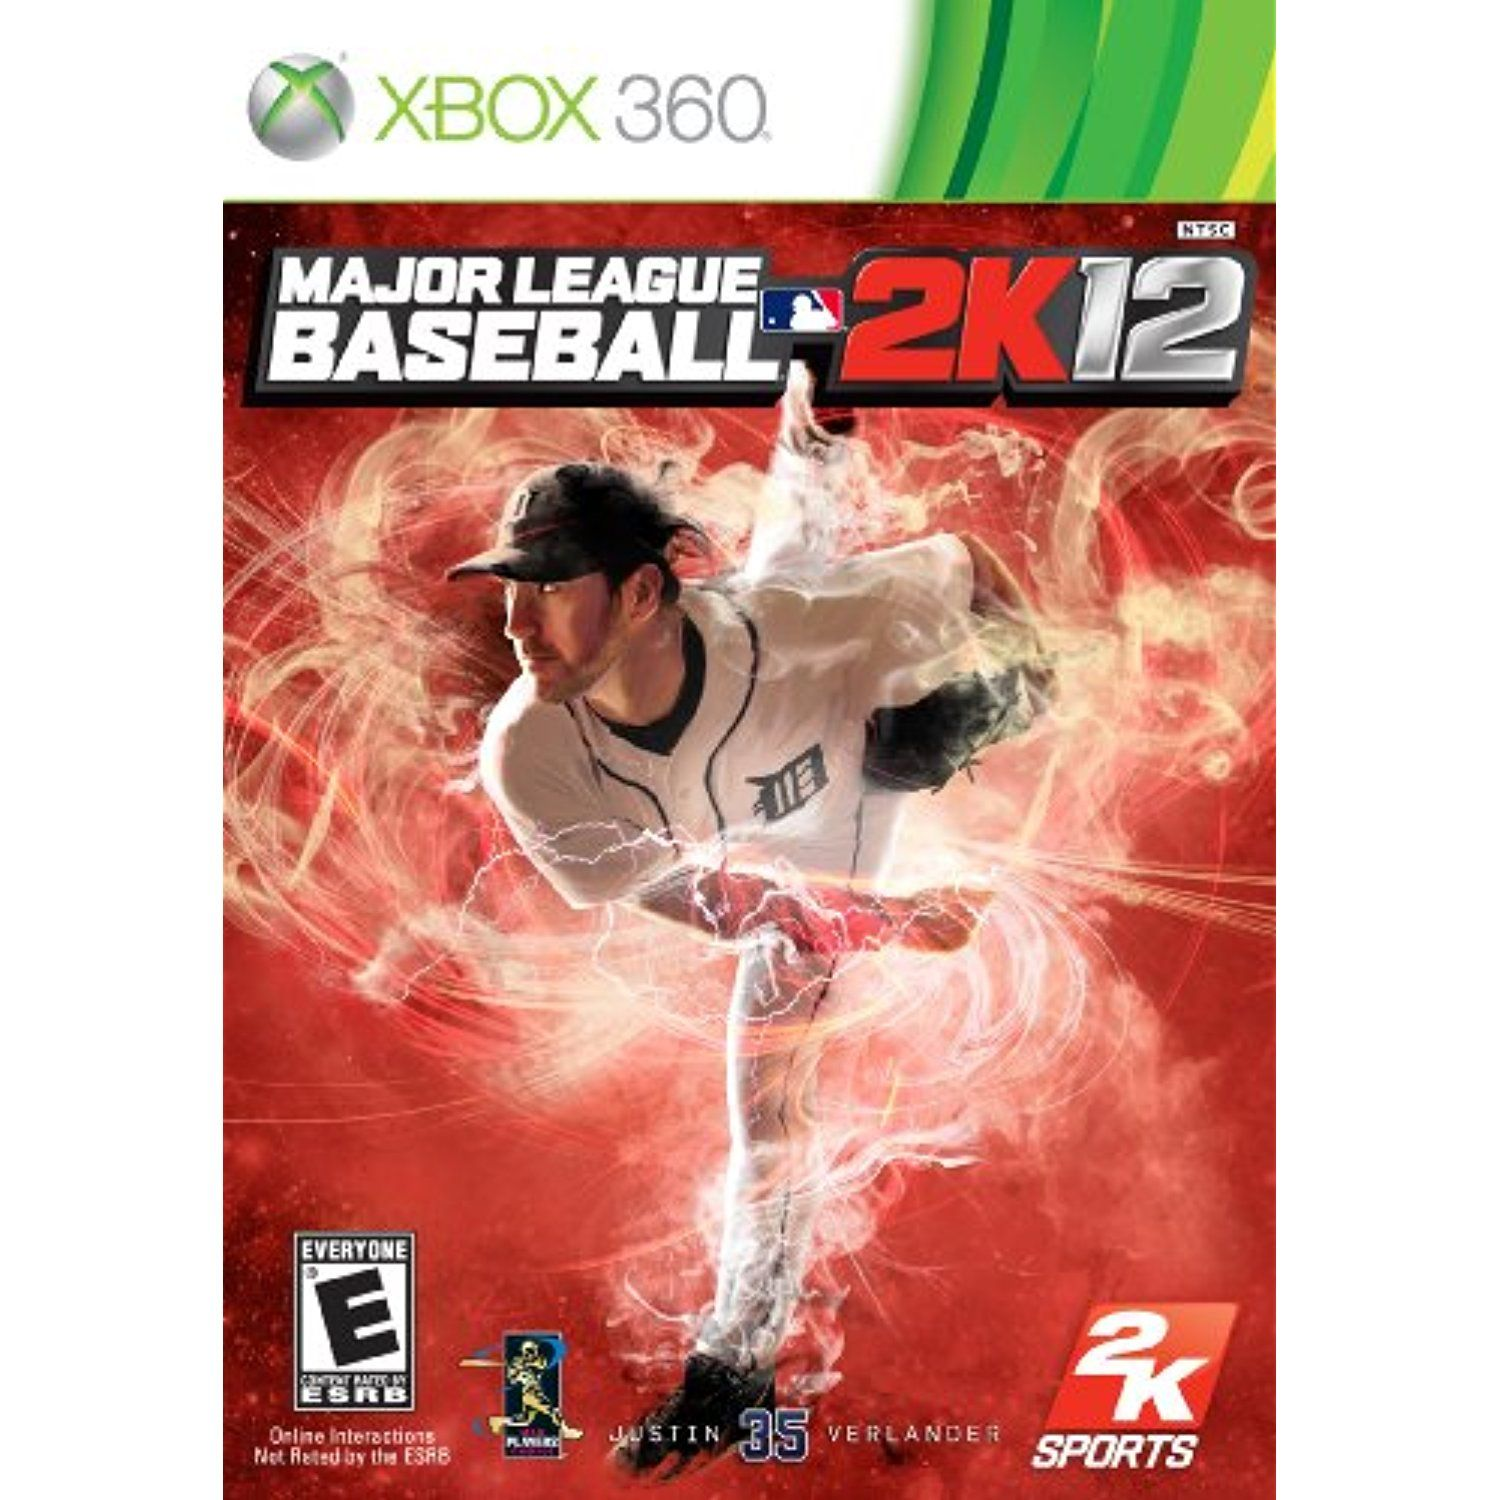 Major League Baseball 2k12 Xbox 360 Click Image For More Details This Is An Affiliate Link Vide Major League Baseball Major League Best Baseball Games